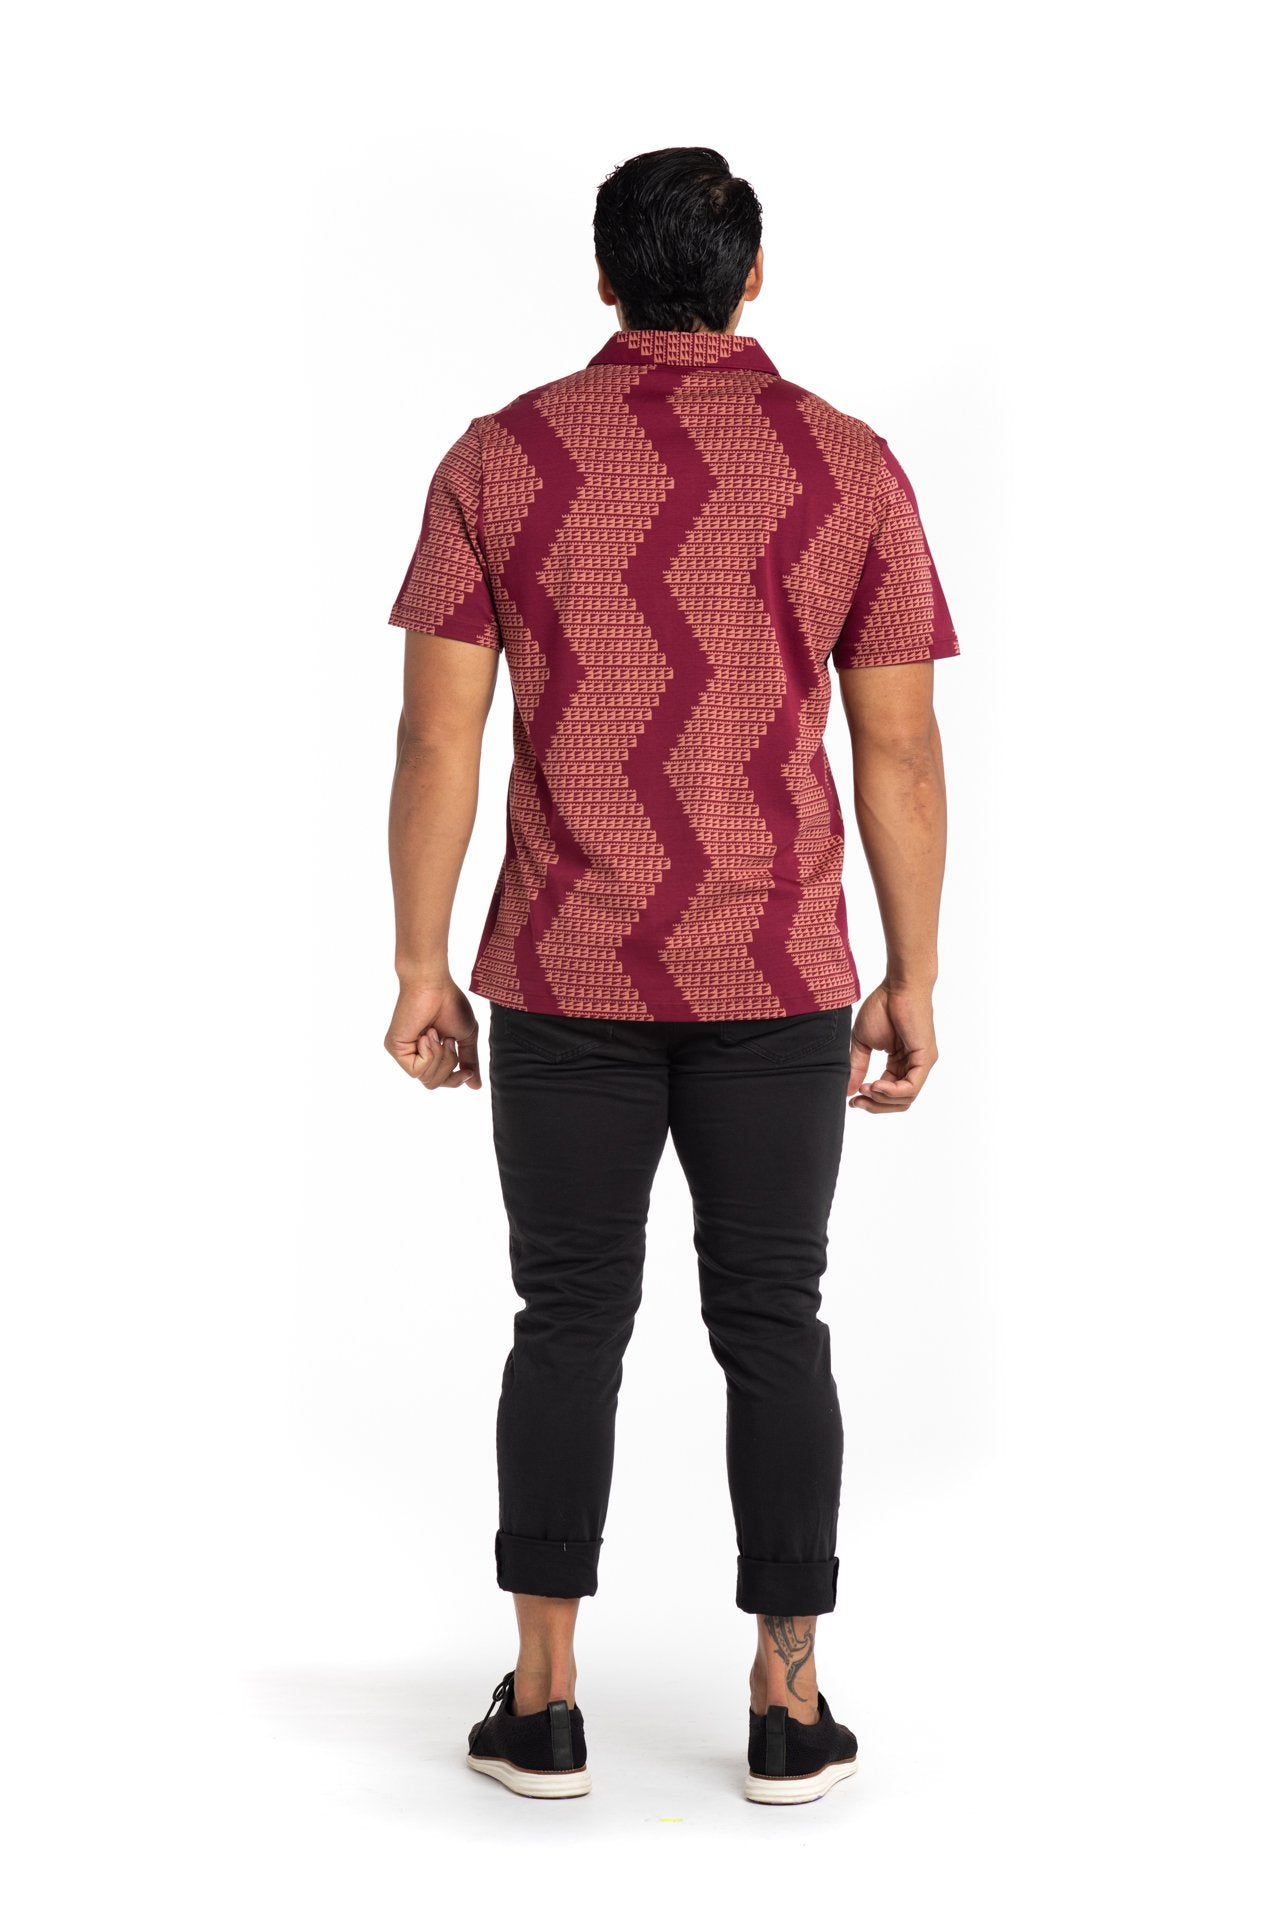 WAIKII POLO - NIHOMANO/ RHOD-COPPER BROWN